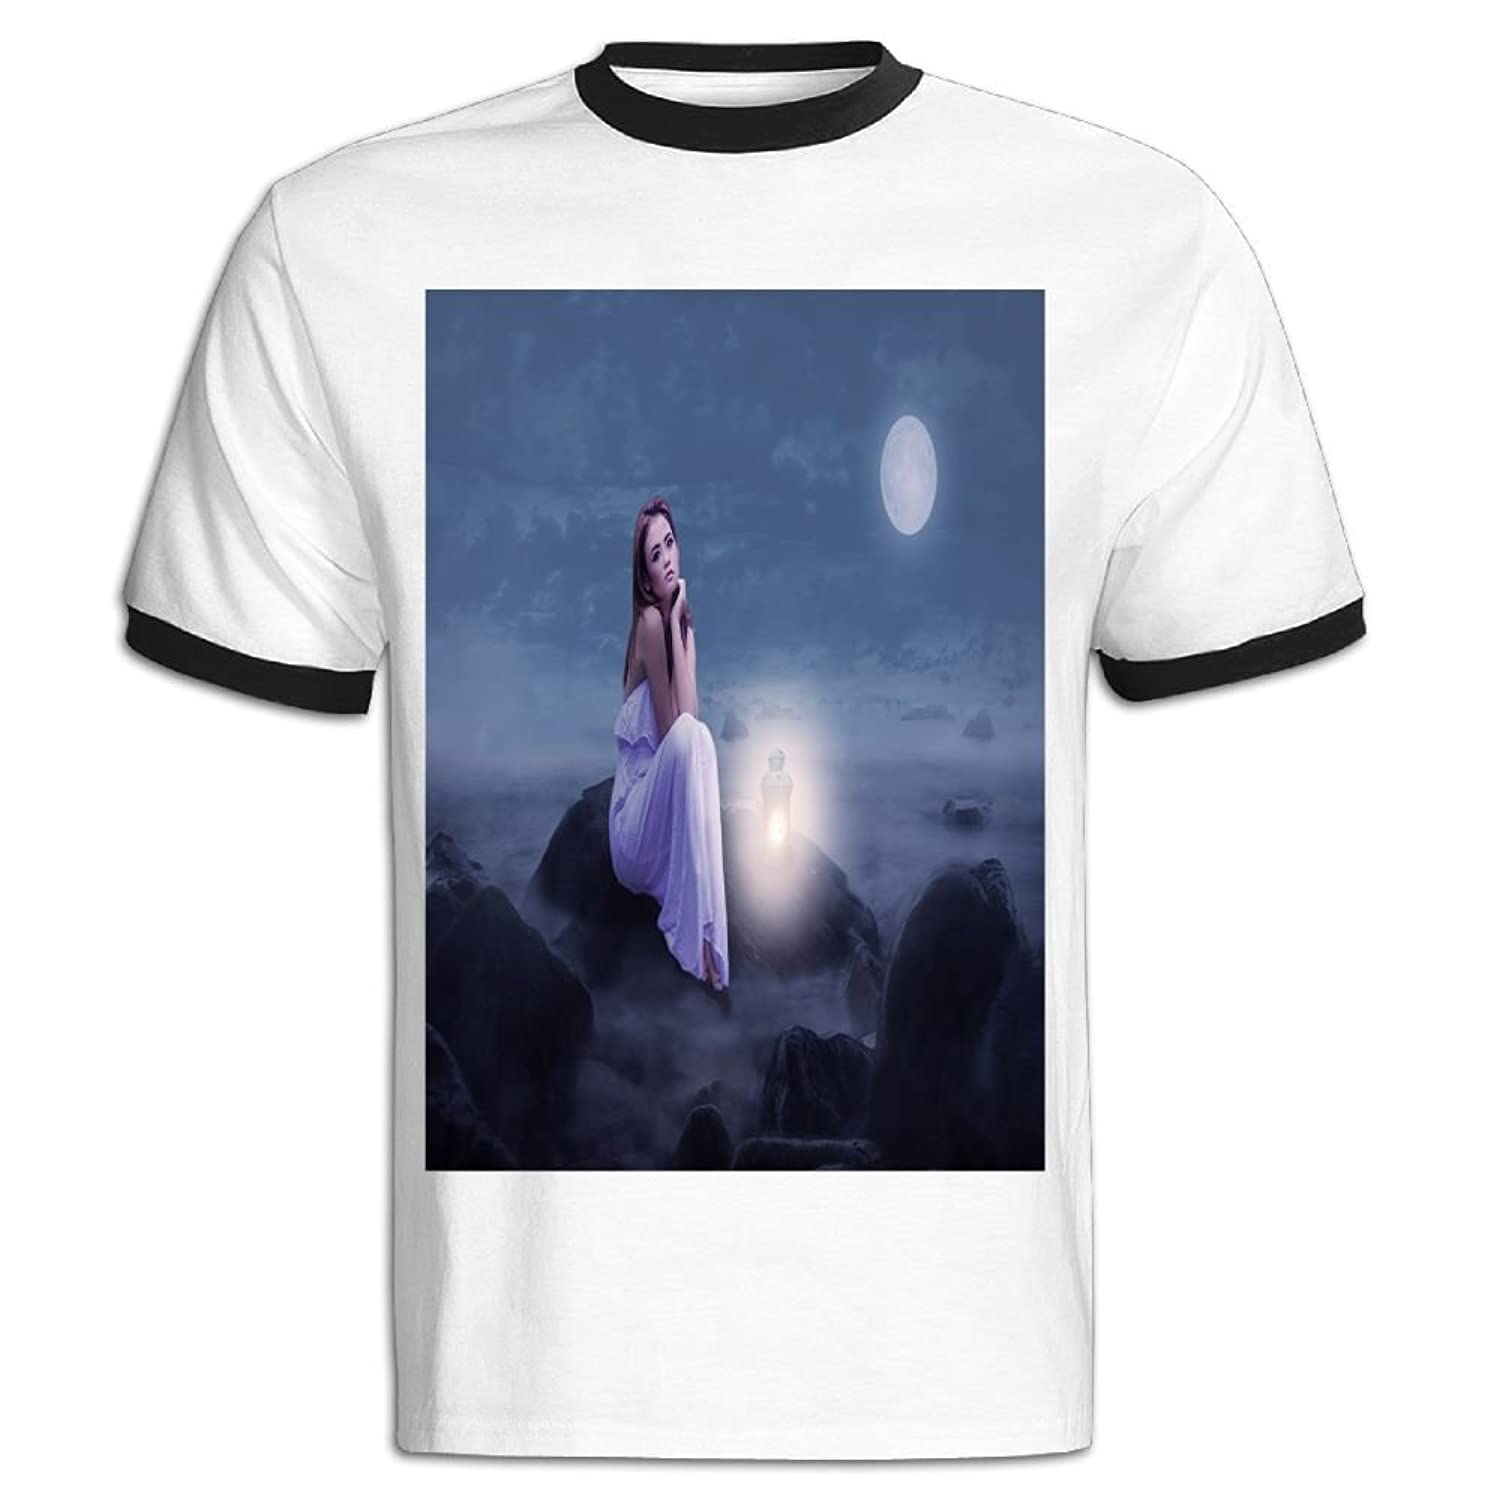 Jackjom Full Moon Night Mood Hit Color T Shirt For Men Amazon